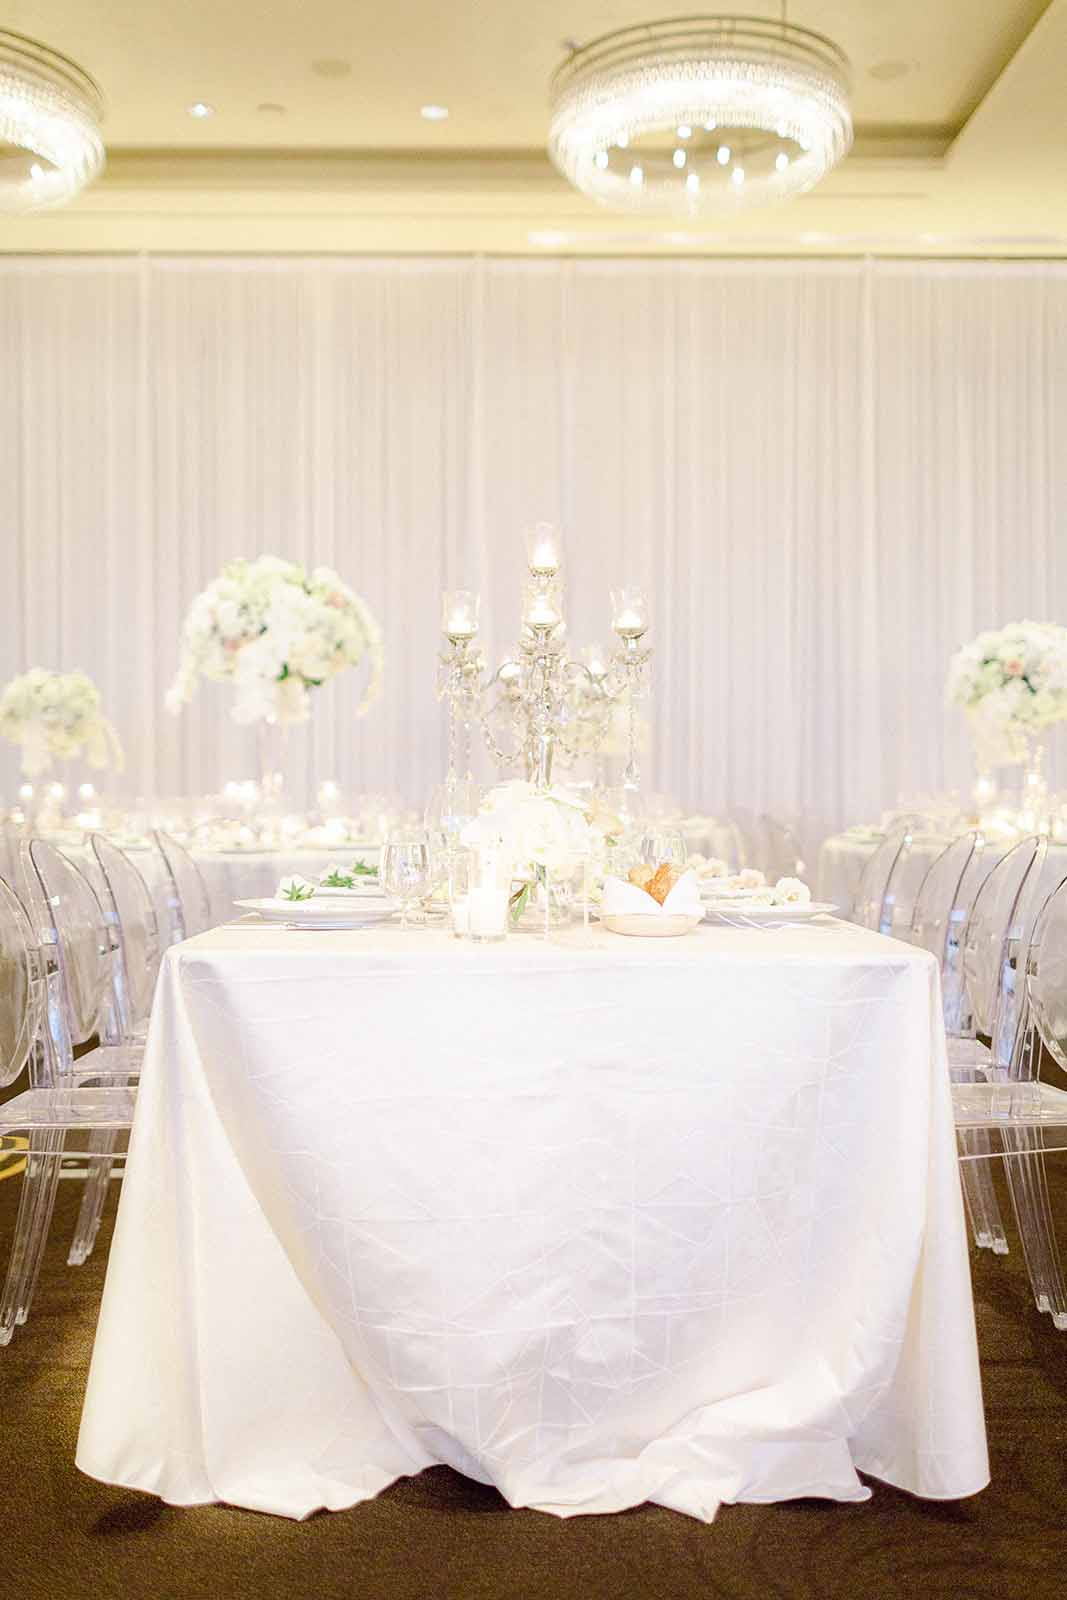 Long table with white table cloth and low white floral and candelabras in a white draped ballroom